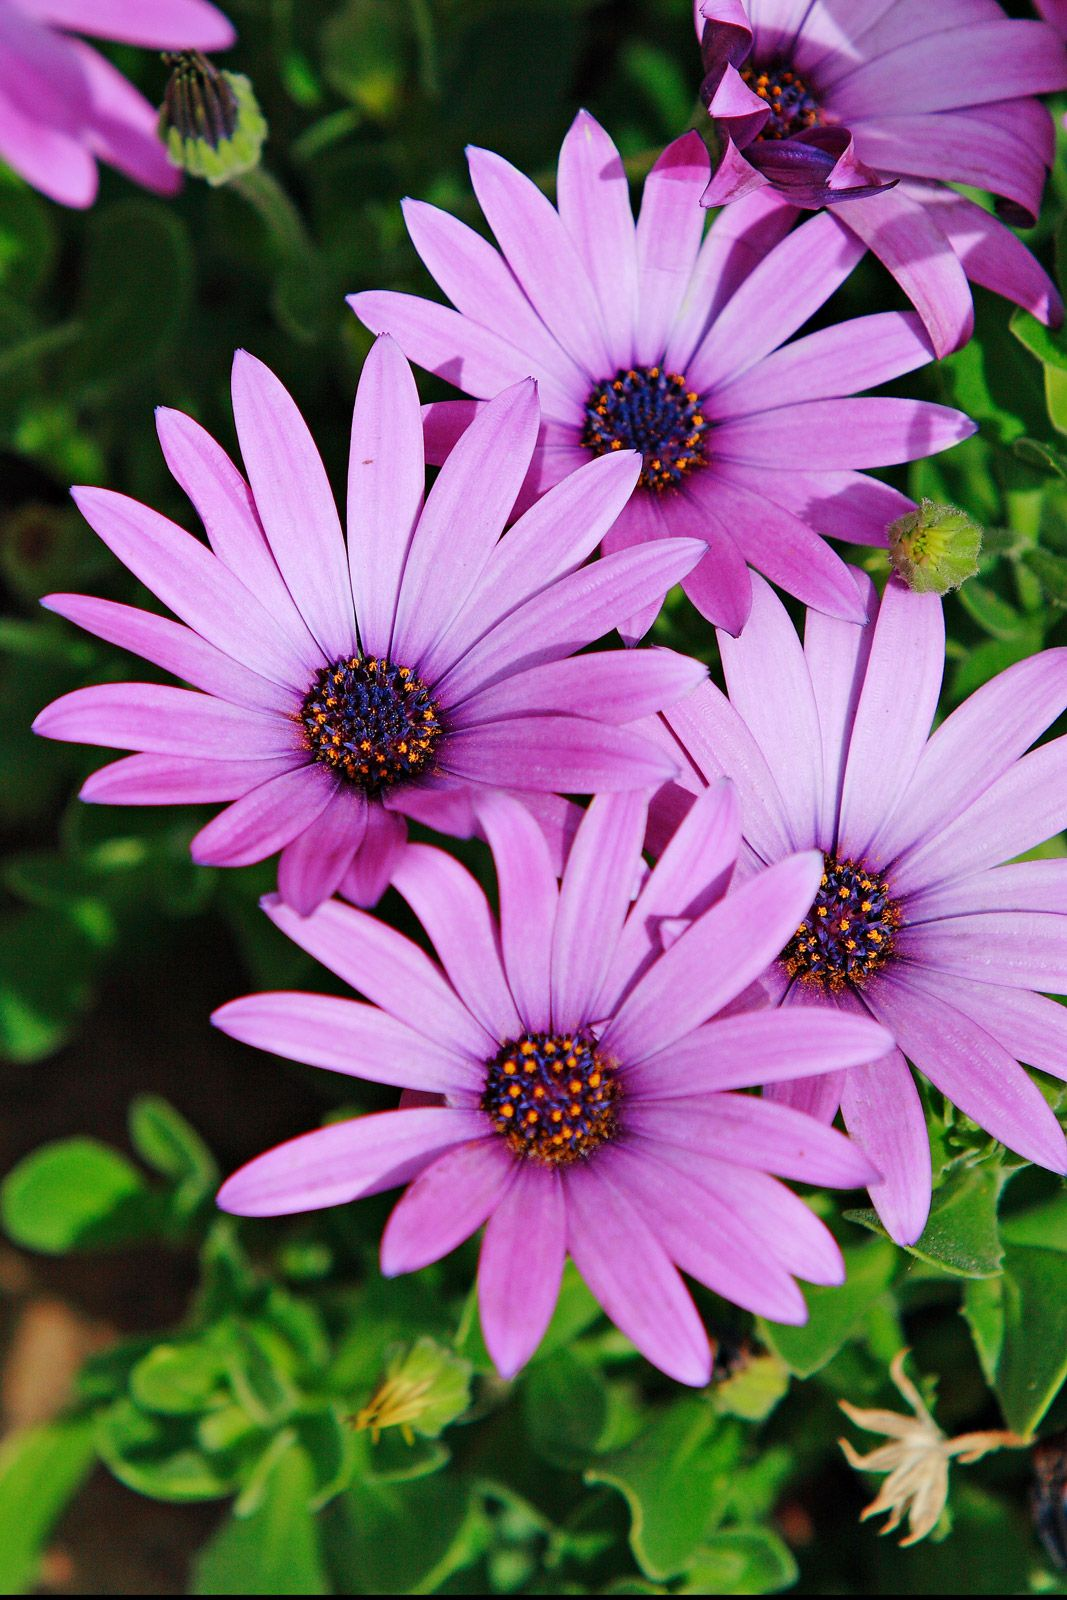 Colorful daisy flowers african daisies purple in color and colorful daisy flowers african daisies purple in color and wonderful to look at izmirmasajfo Choice Image